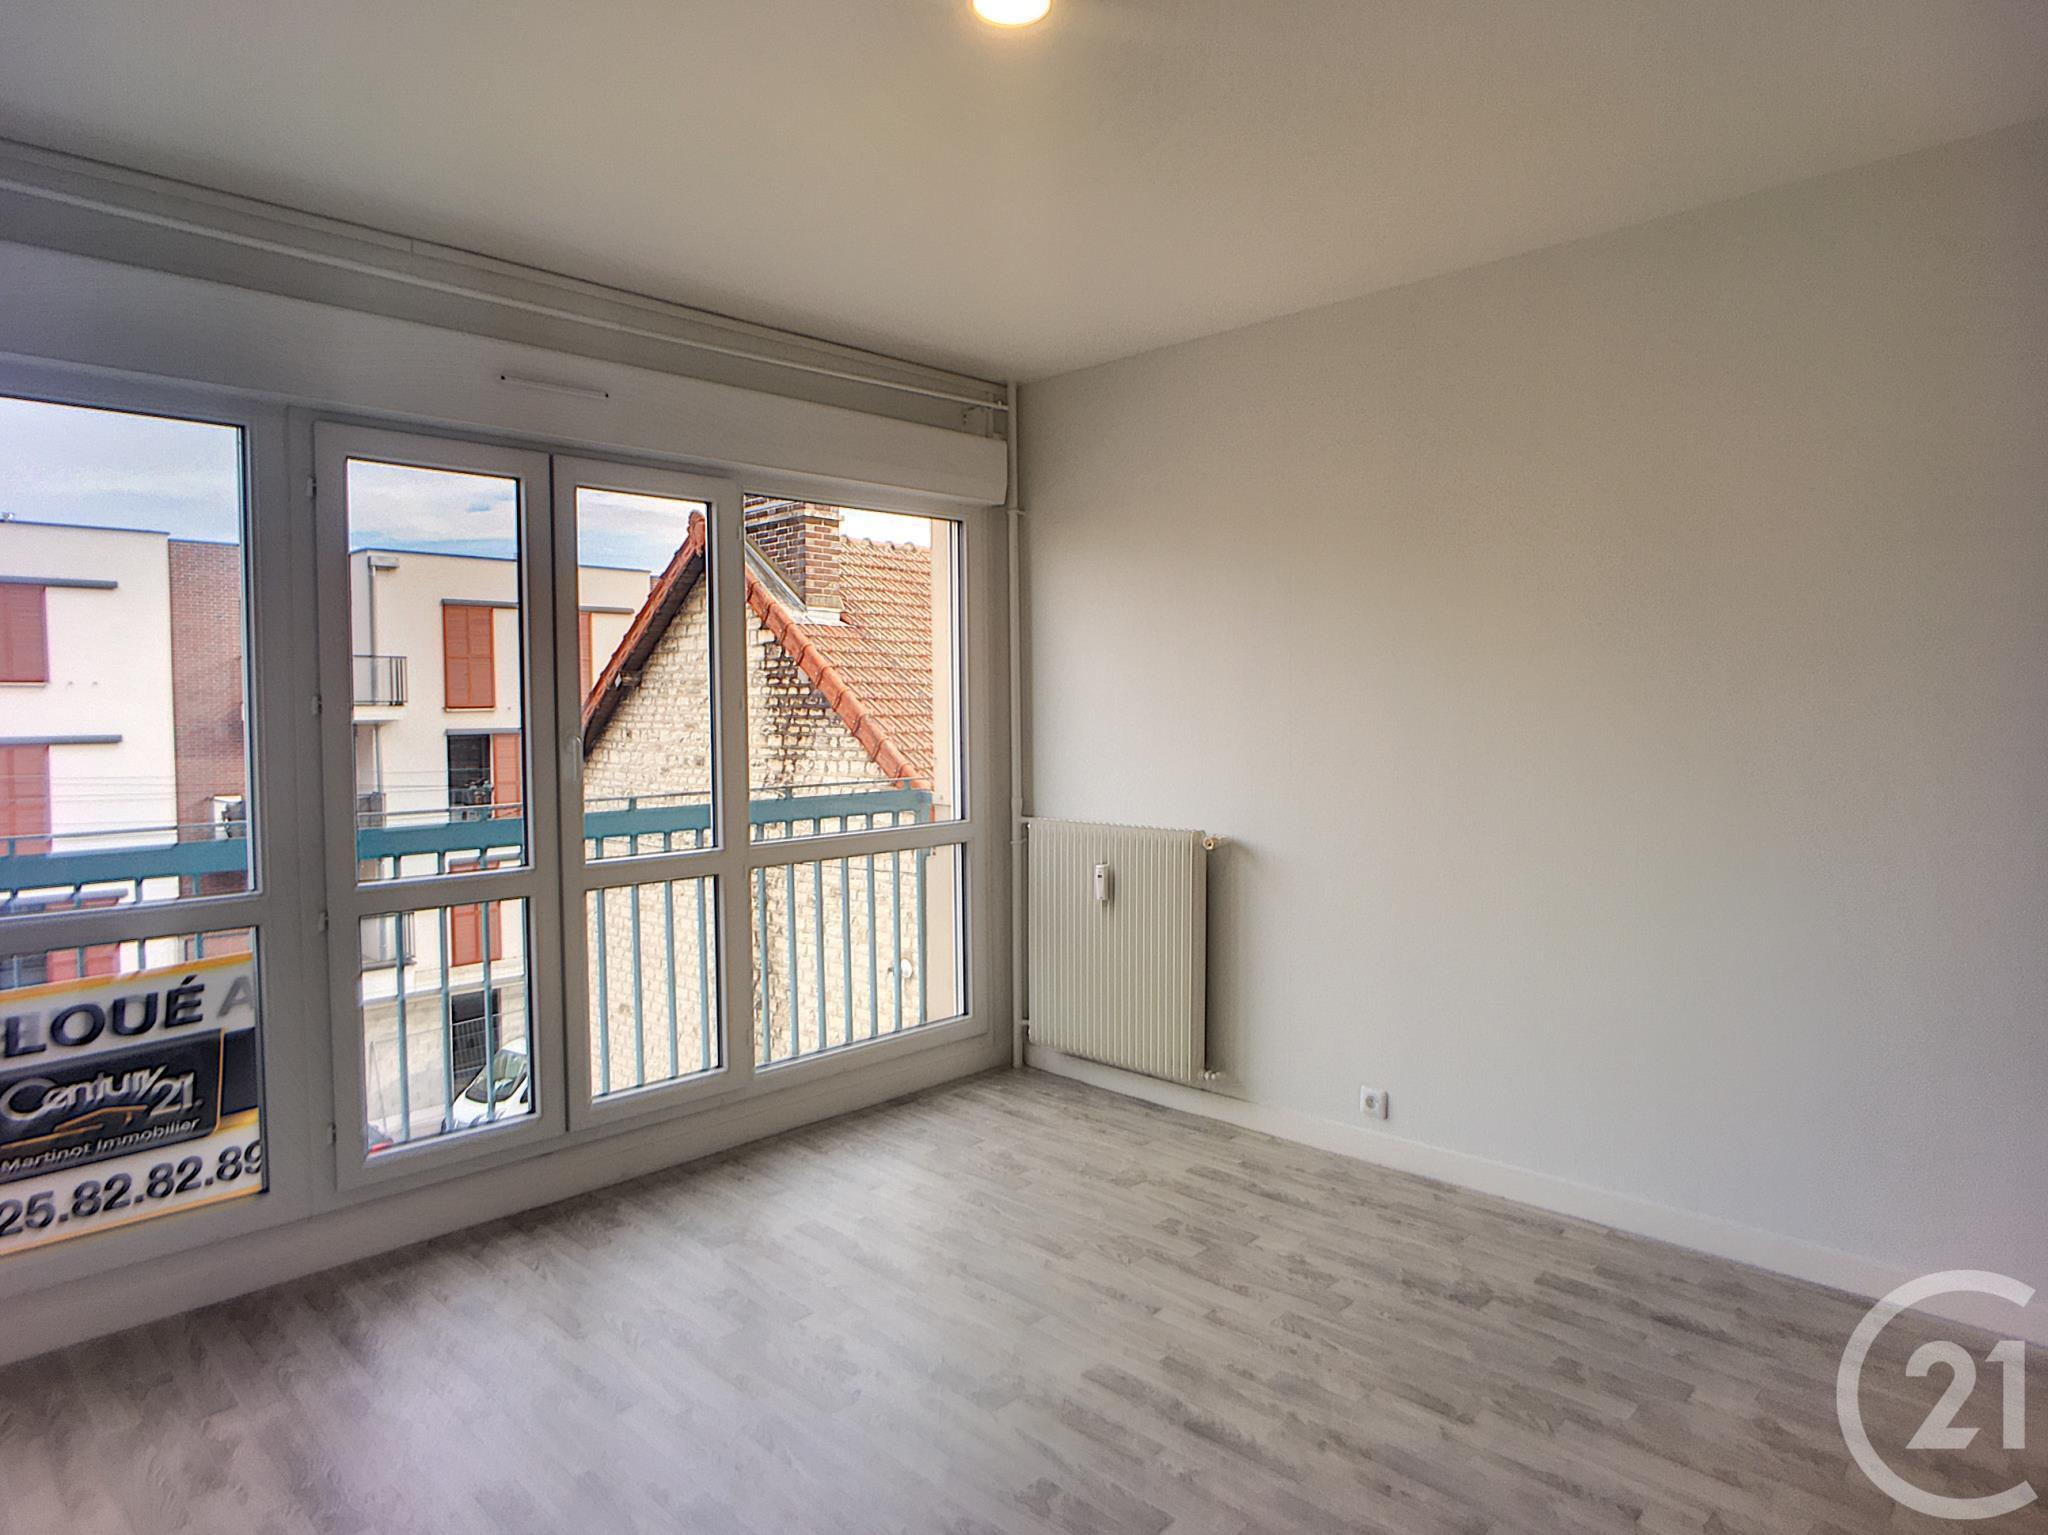 Appartement F1 à louer - 1 pièce - 25 m2 - TROYES - 10 - CHAMPAGNE-ARDENNE